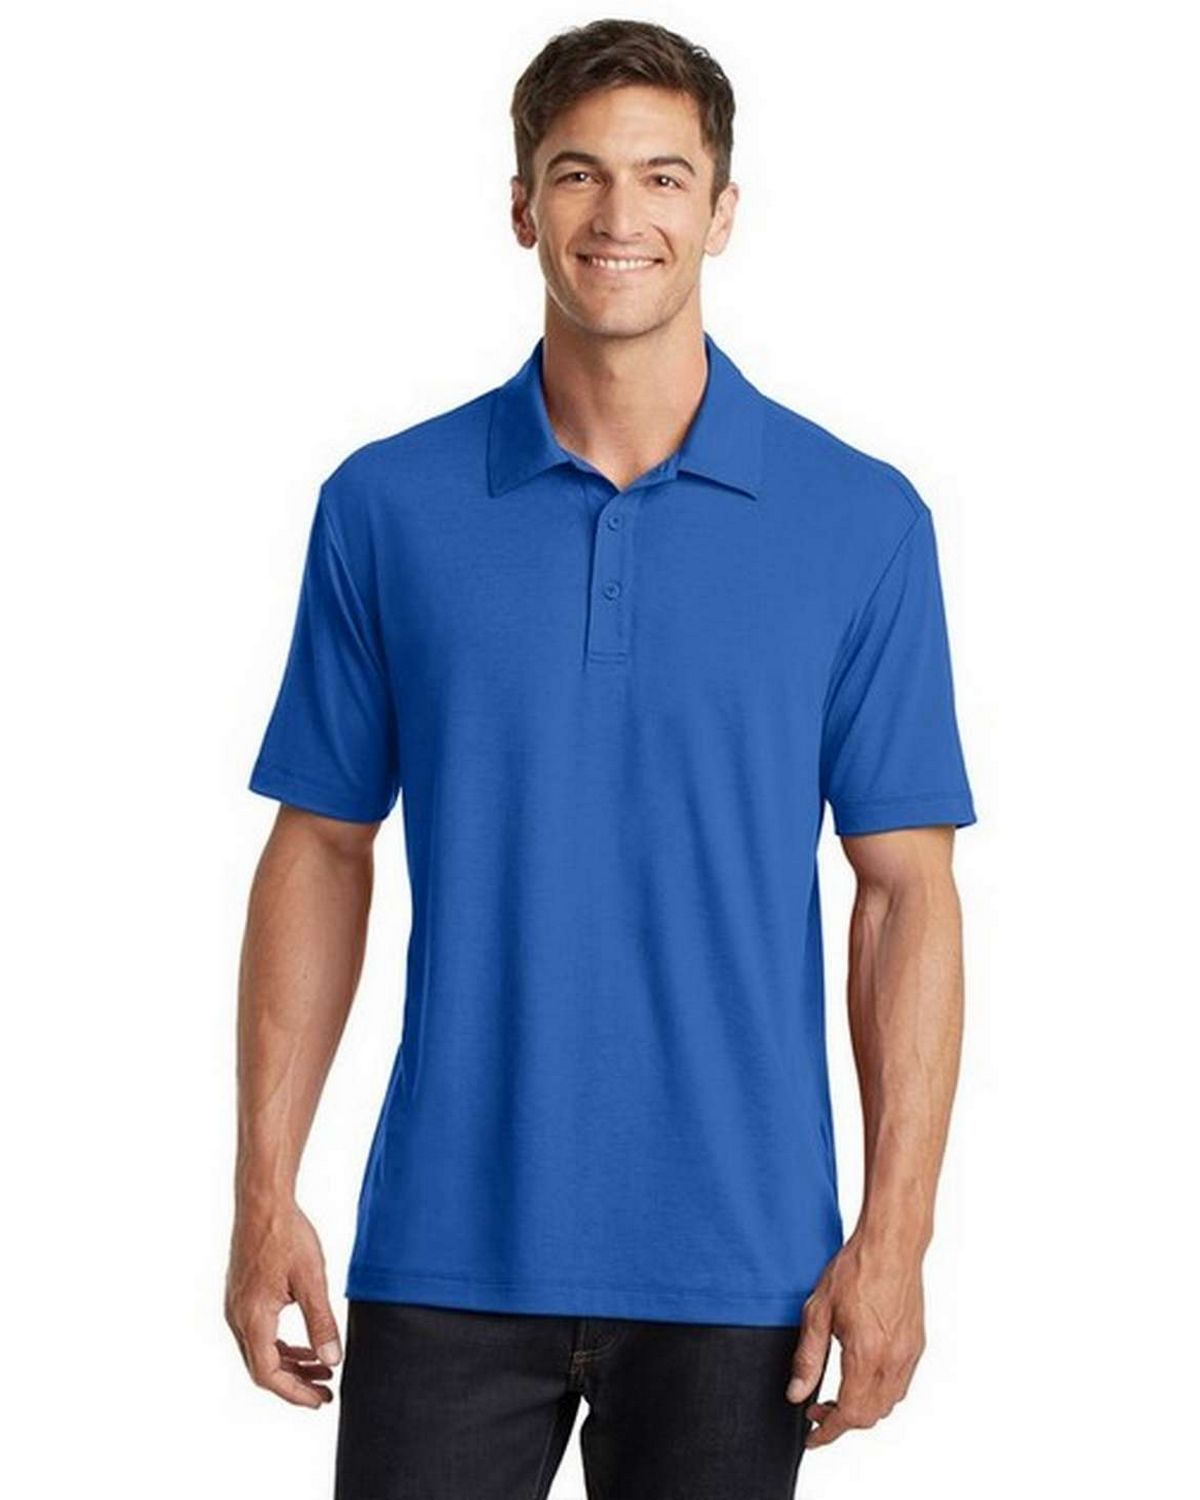 Port Authority K568 Cotton Touch Performance Polo Shirt